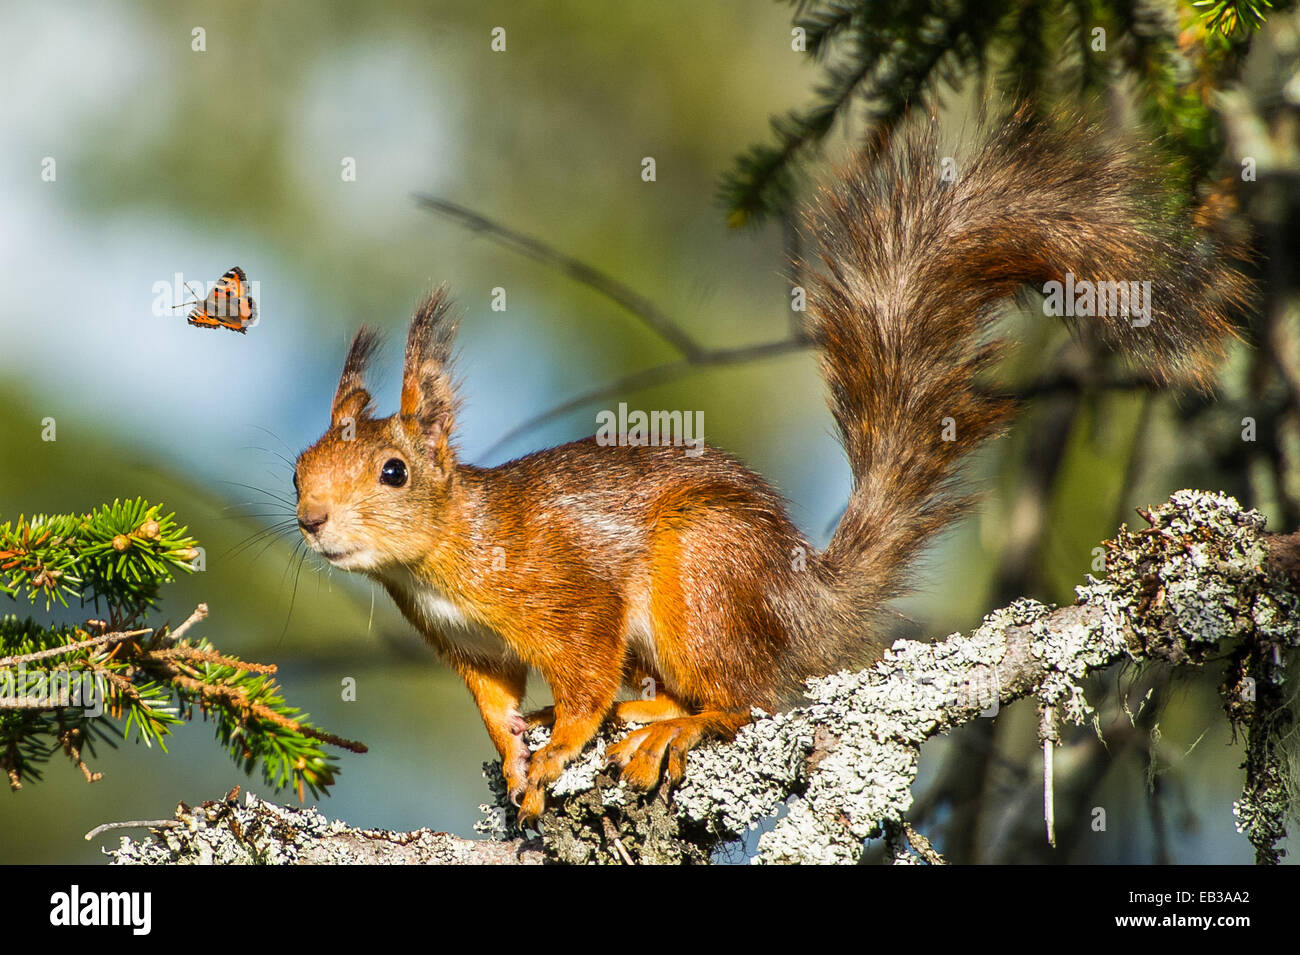 Squirrel looking at flying butterfly Stock Photo